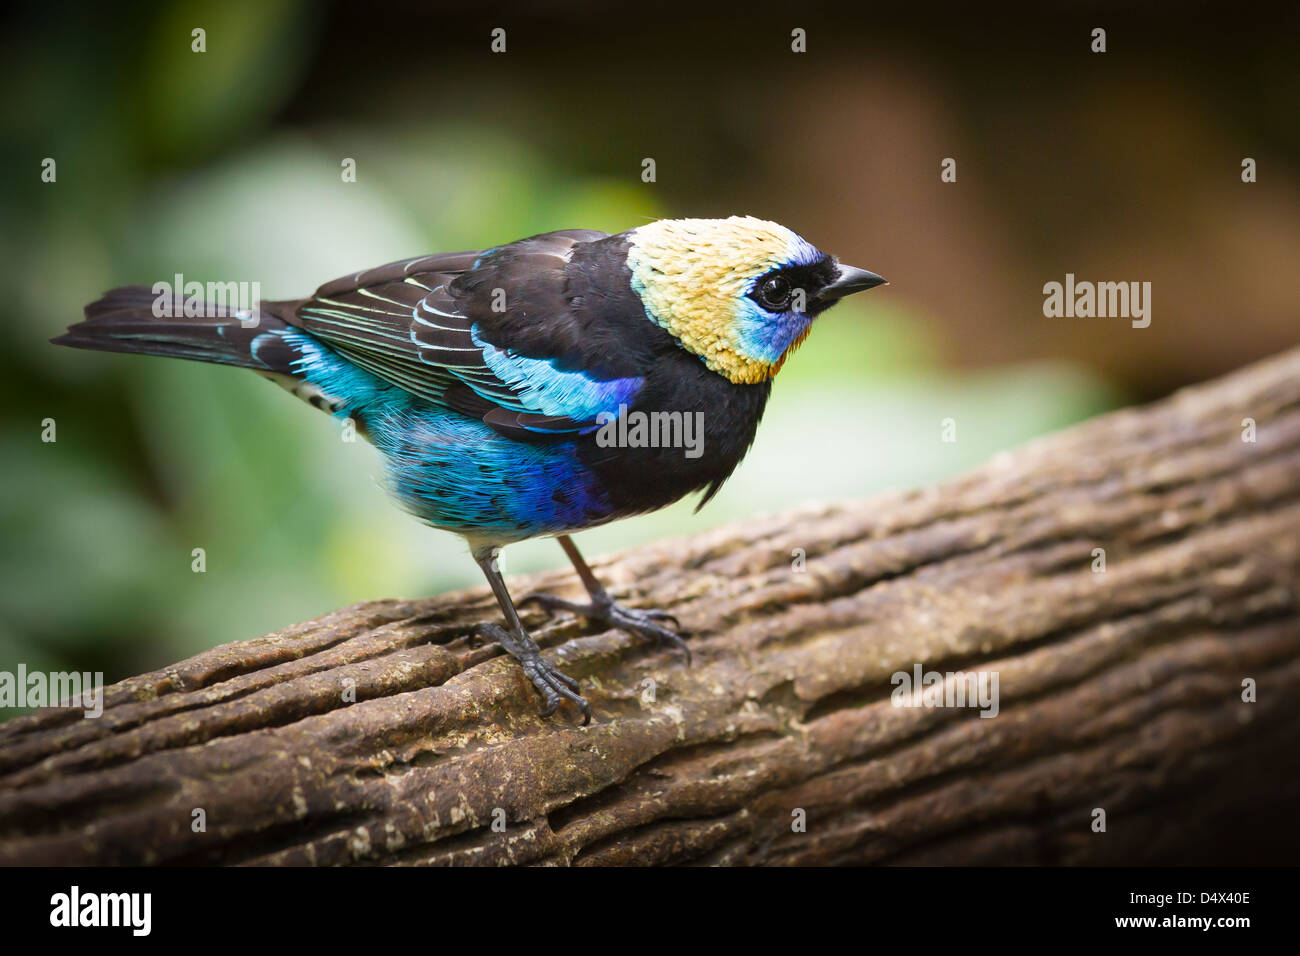 Golden-hooded Tanager (Tangara larvata) sitting on a trunk. It is a passerine bird living in central America - Stock Image